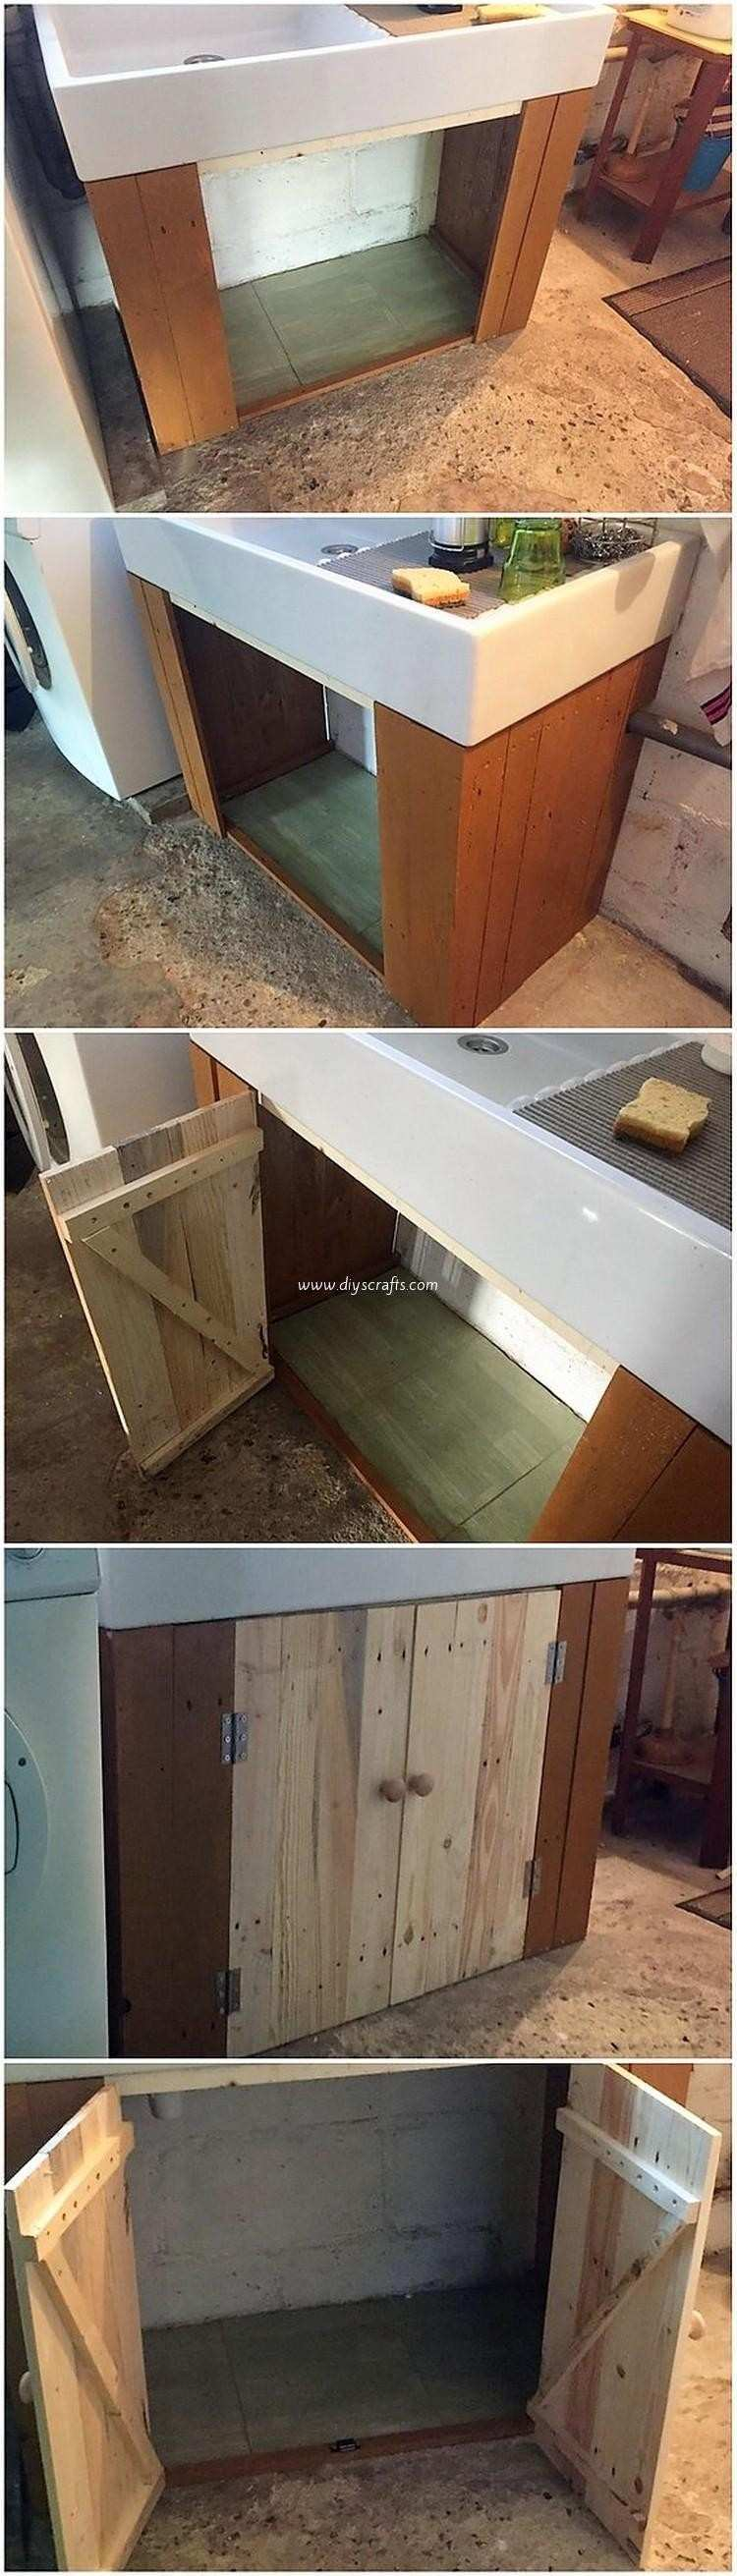 Cool Ideas with Recycled Wood Pallets